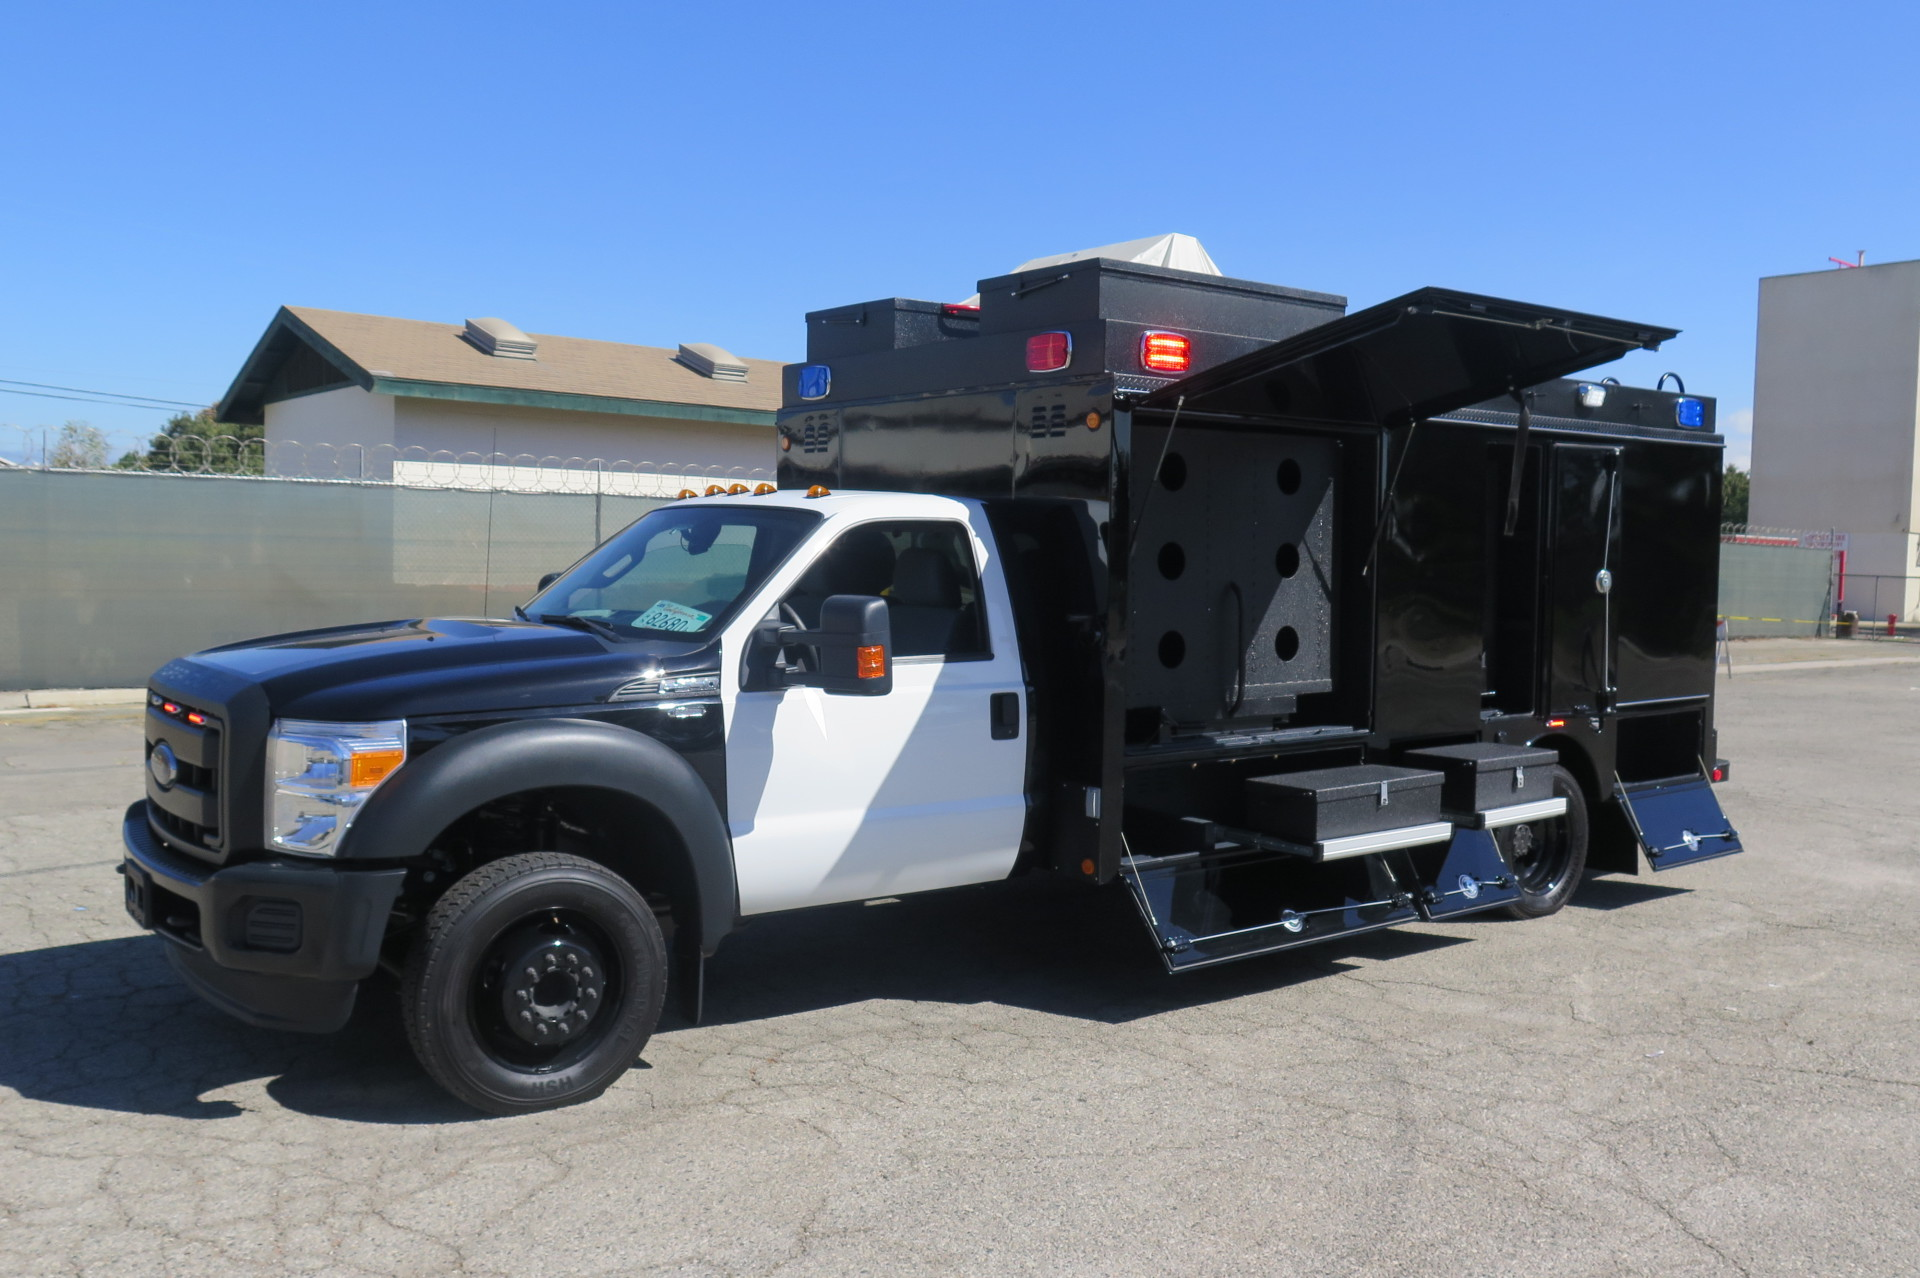 Swat Command Vehicle